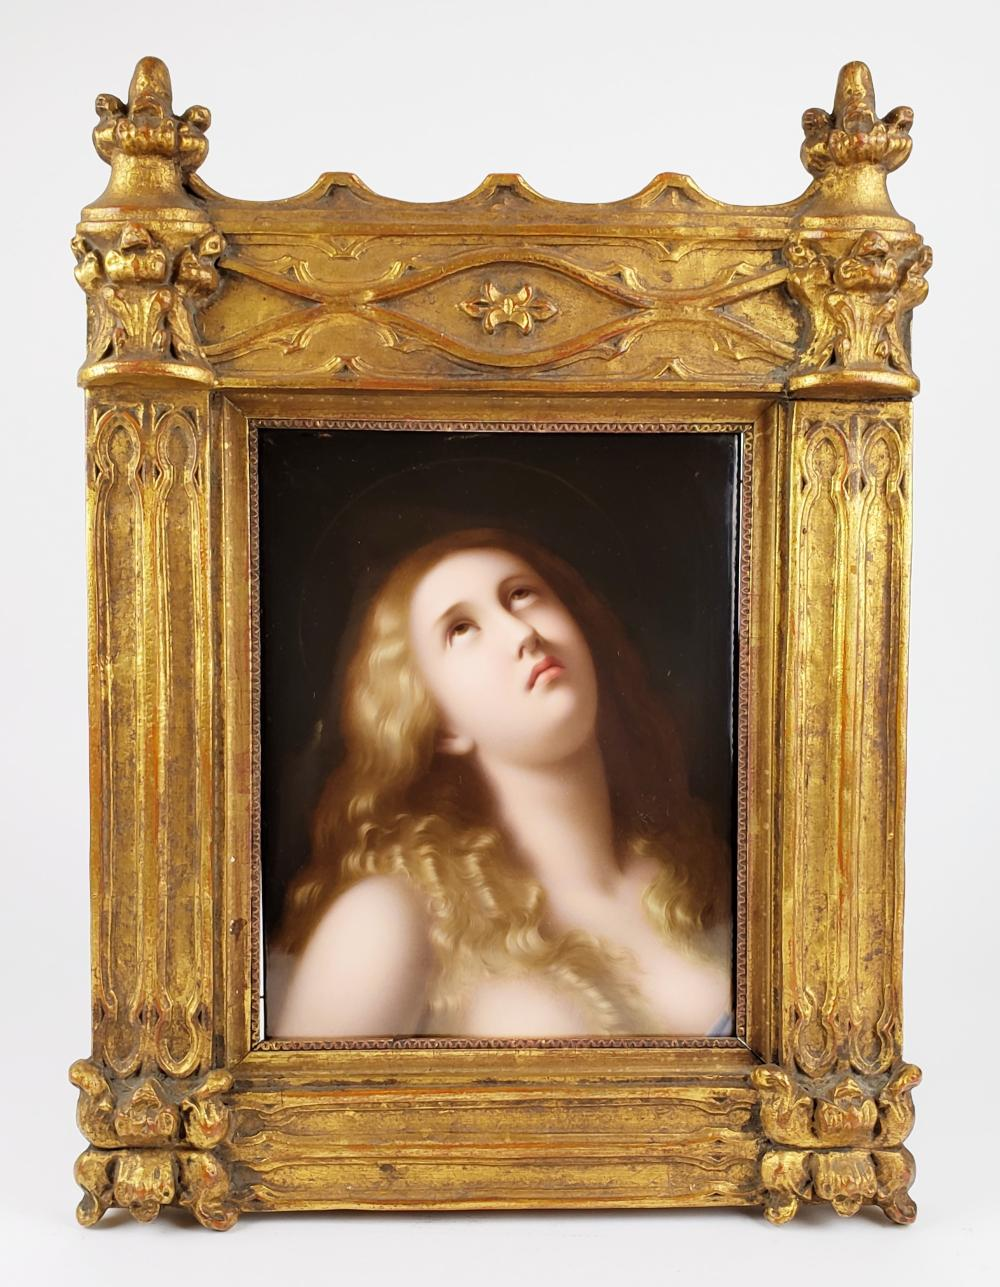 Exquisite 19th C. KPM Plaque of Nude Woman in Giltwood Frame